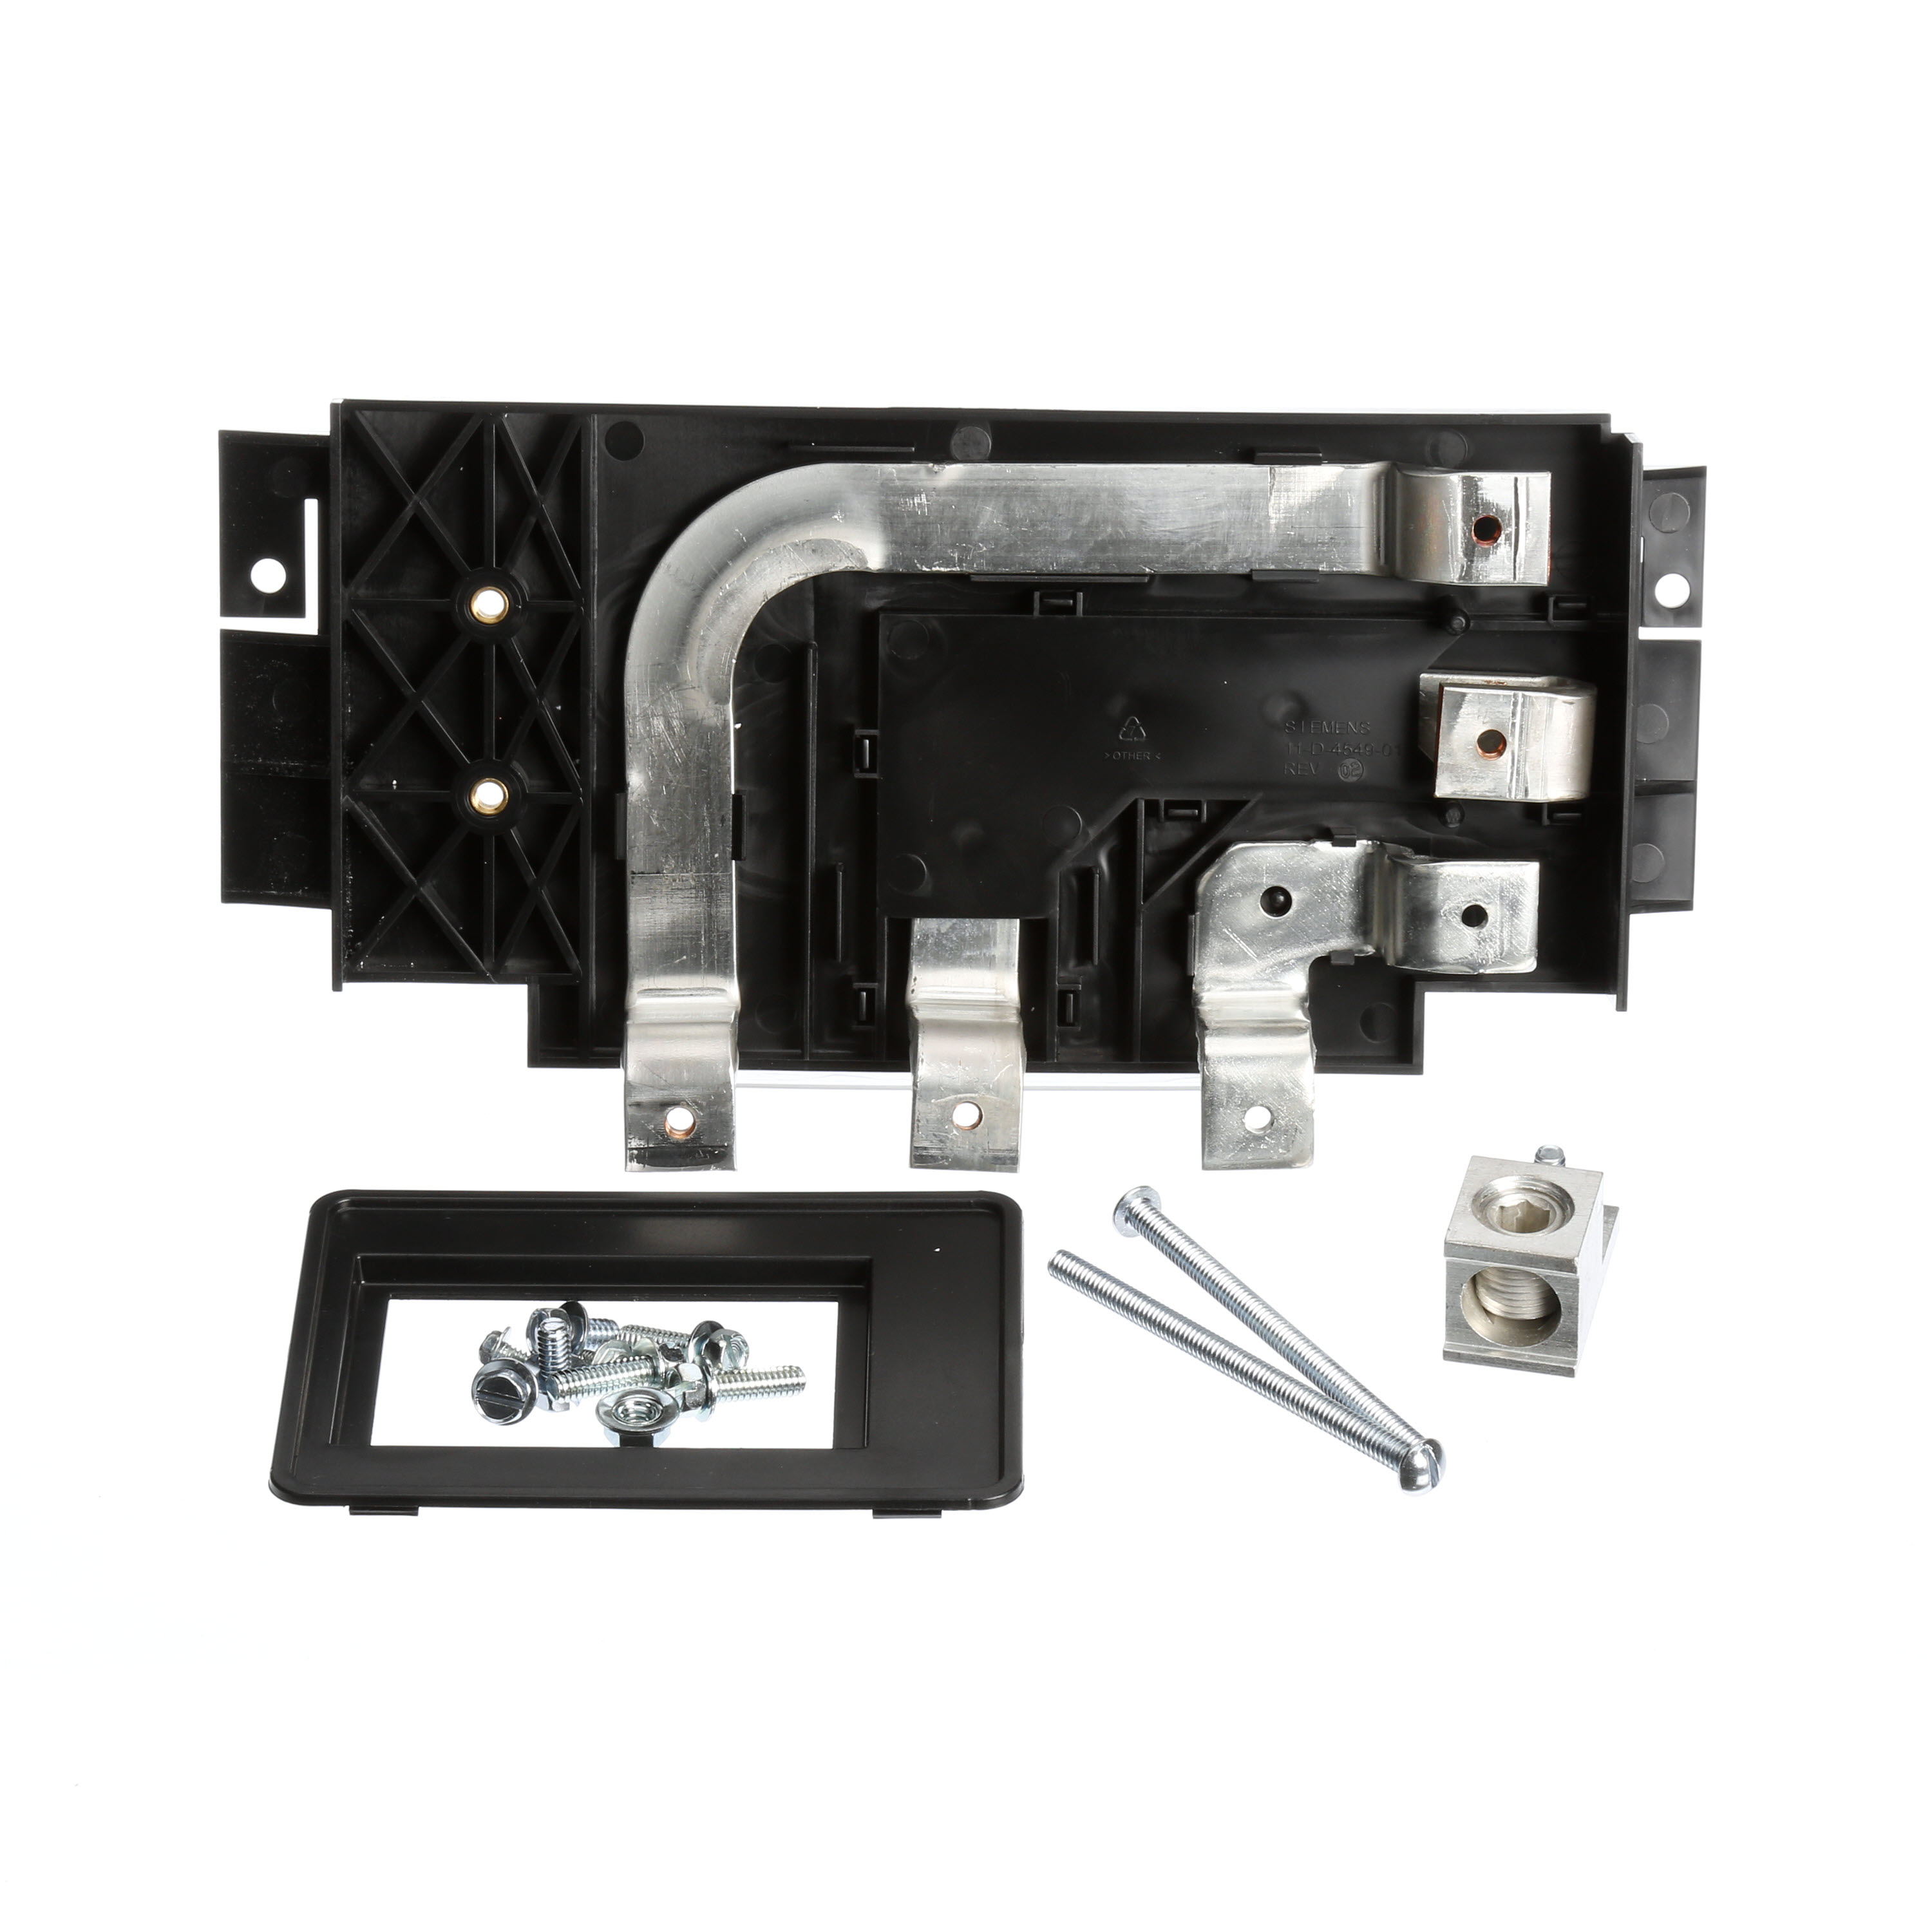 Siemens,MBKFD3A,Breaker Mounting Kit, 3-Phase, 250A